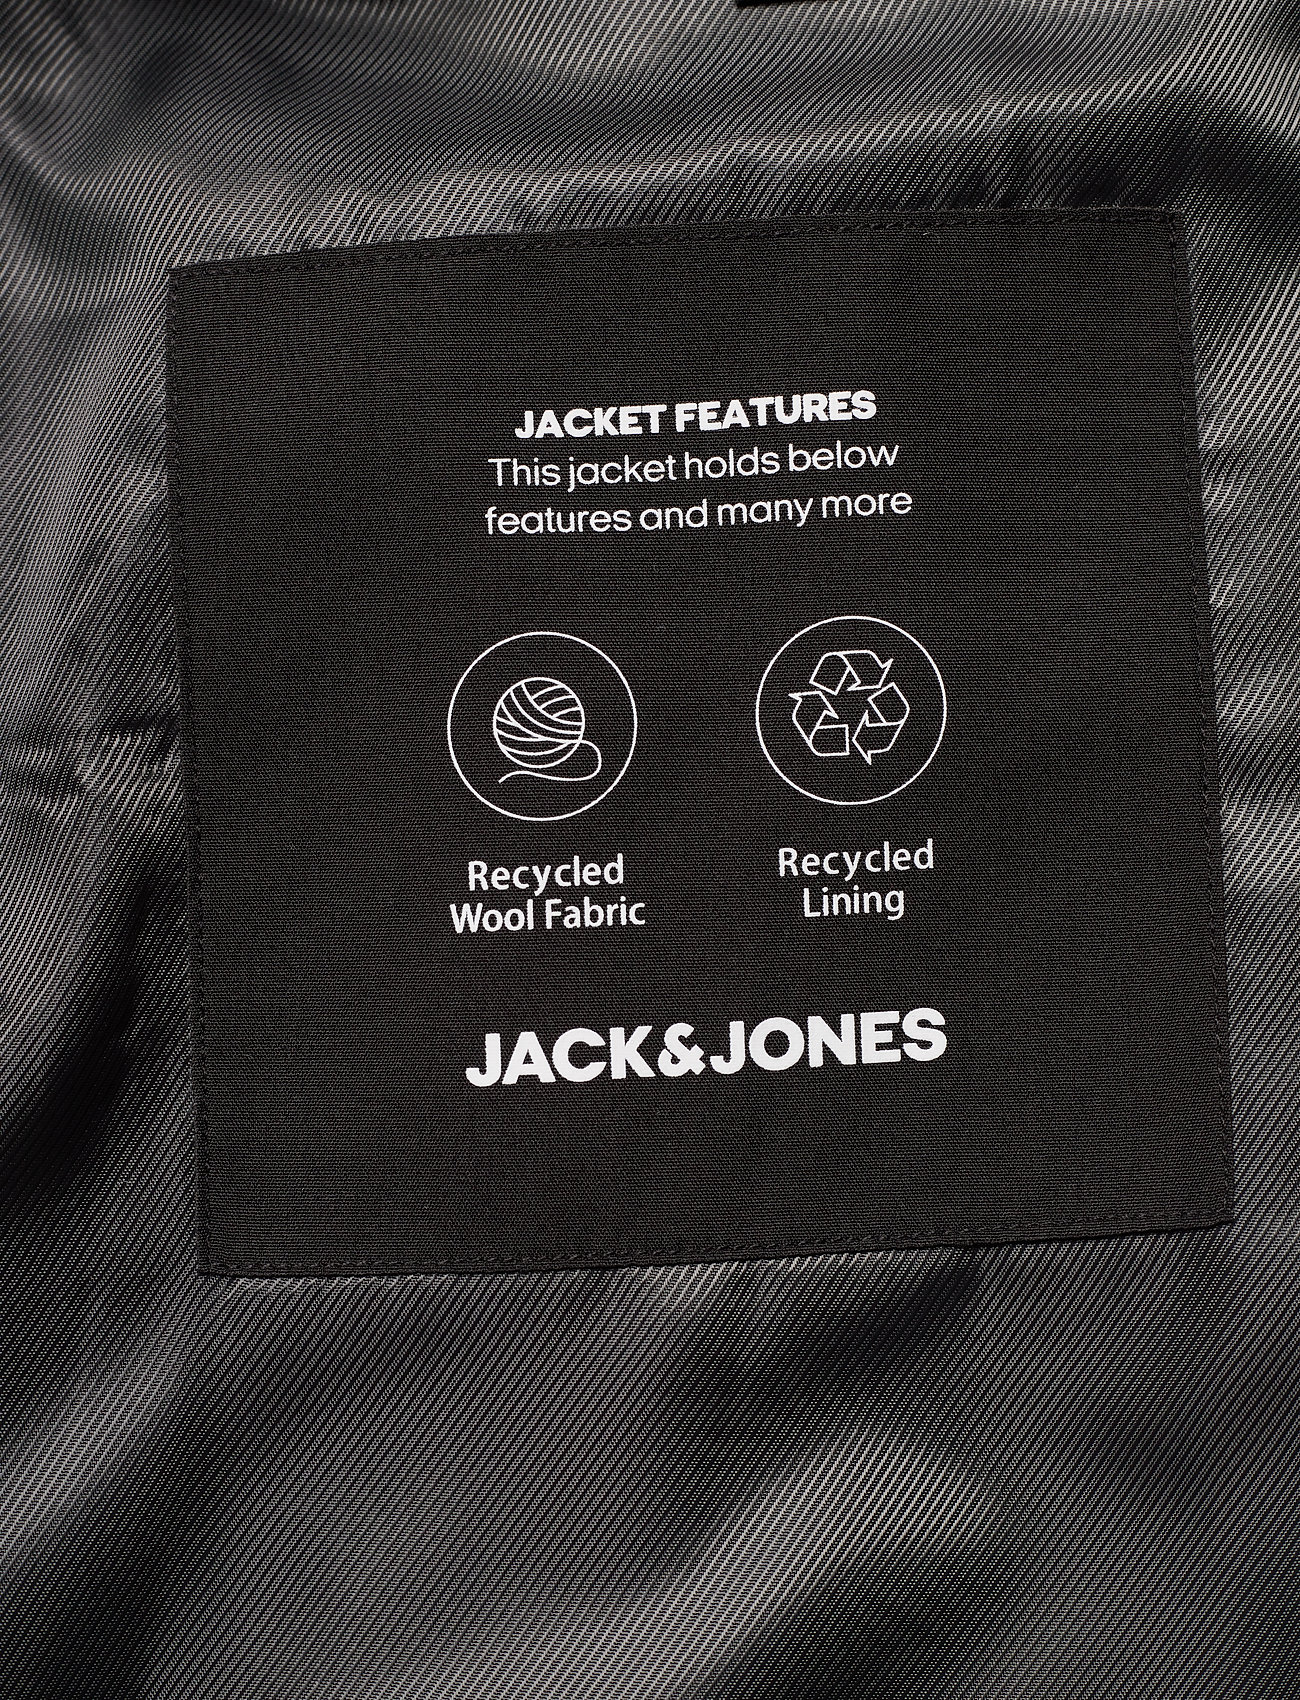 Jack & Jones JJEMOULDER WOOL COAT STS - Jakker og frakker LIGHT GREY MELANGE - Menn Klær